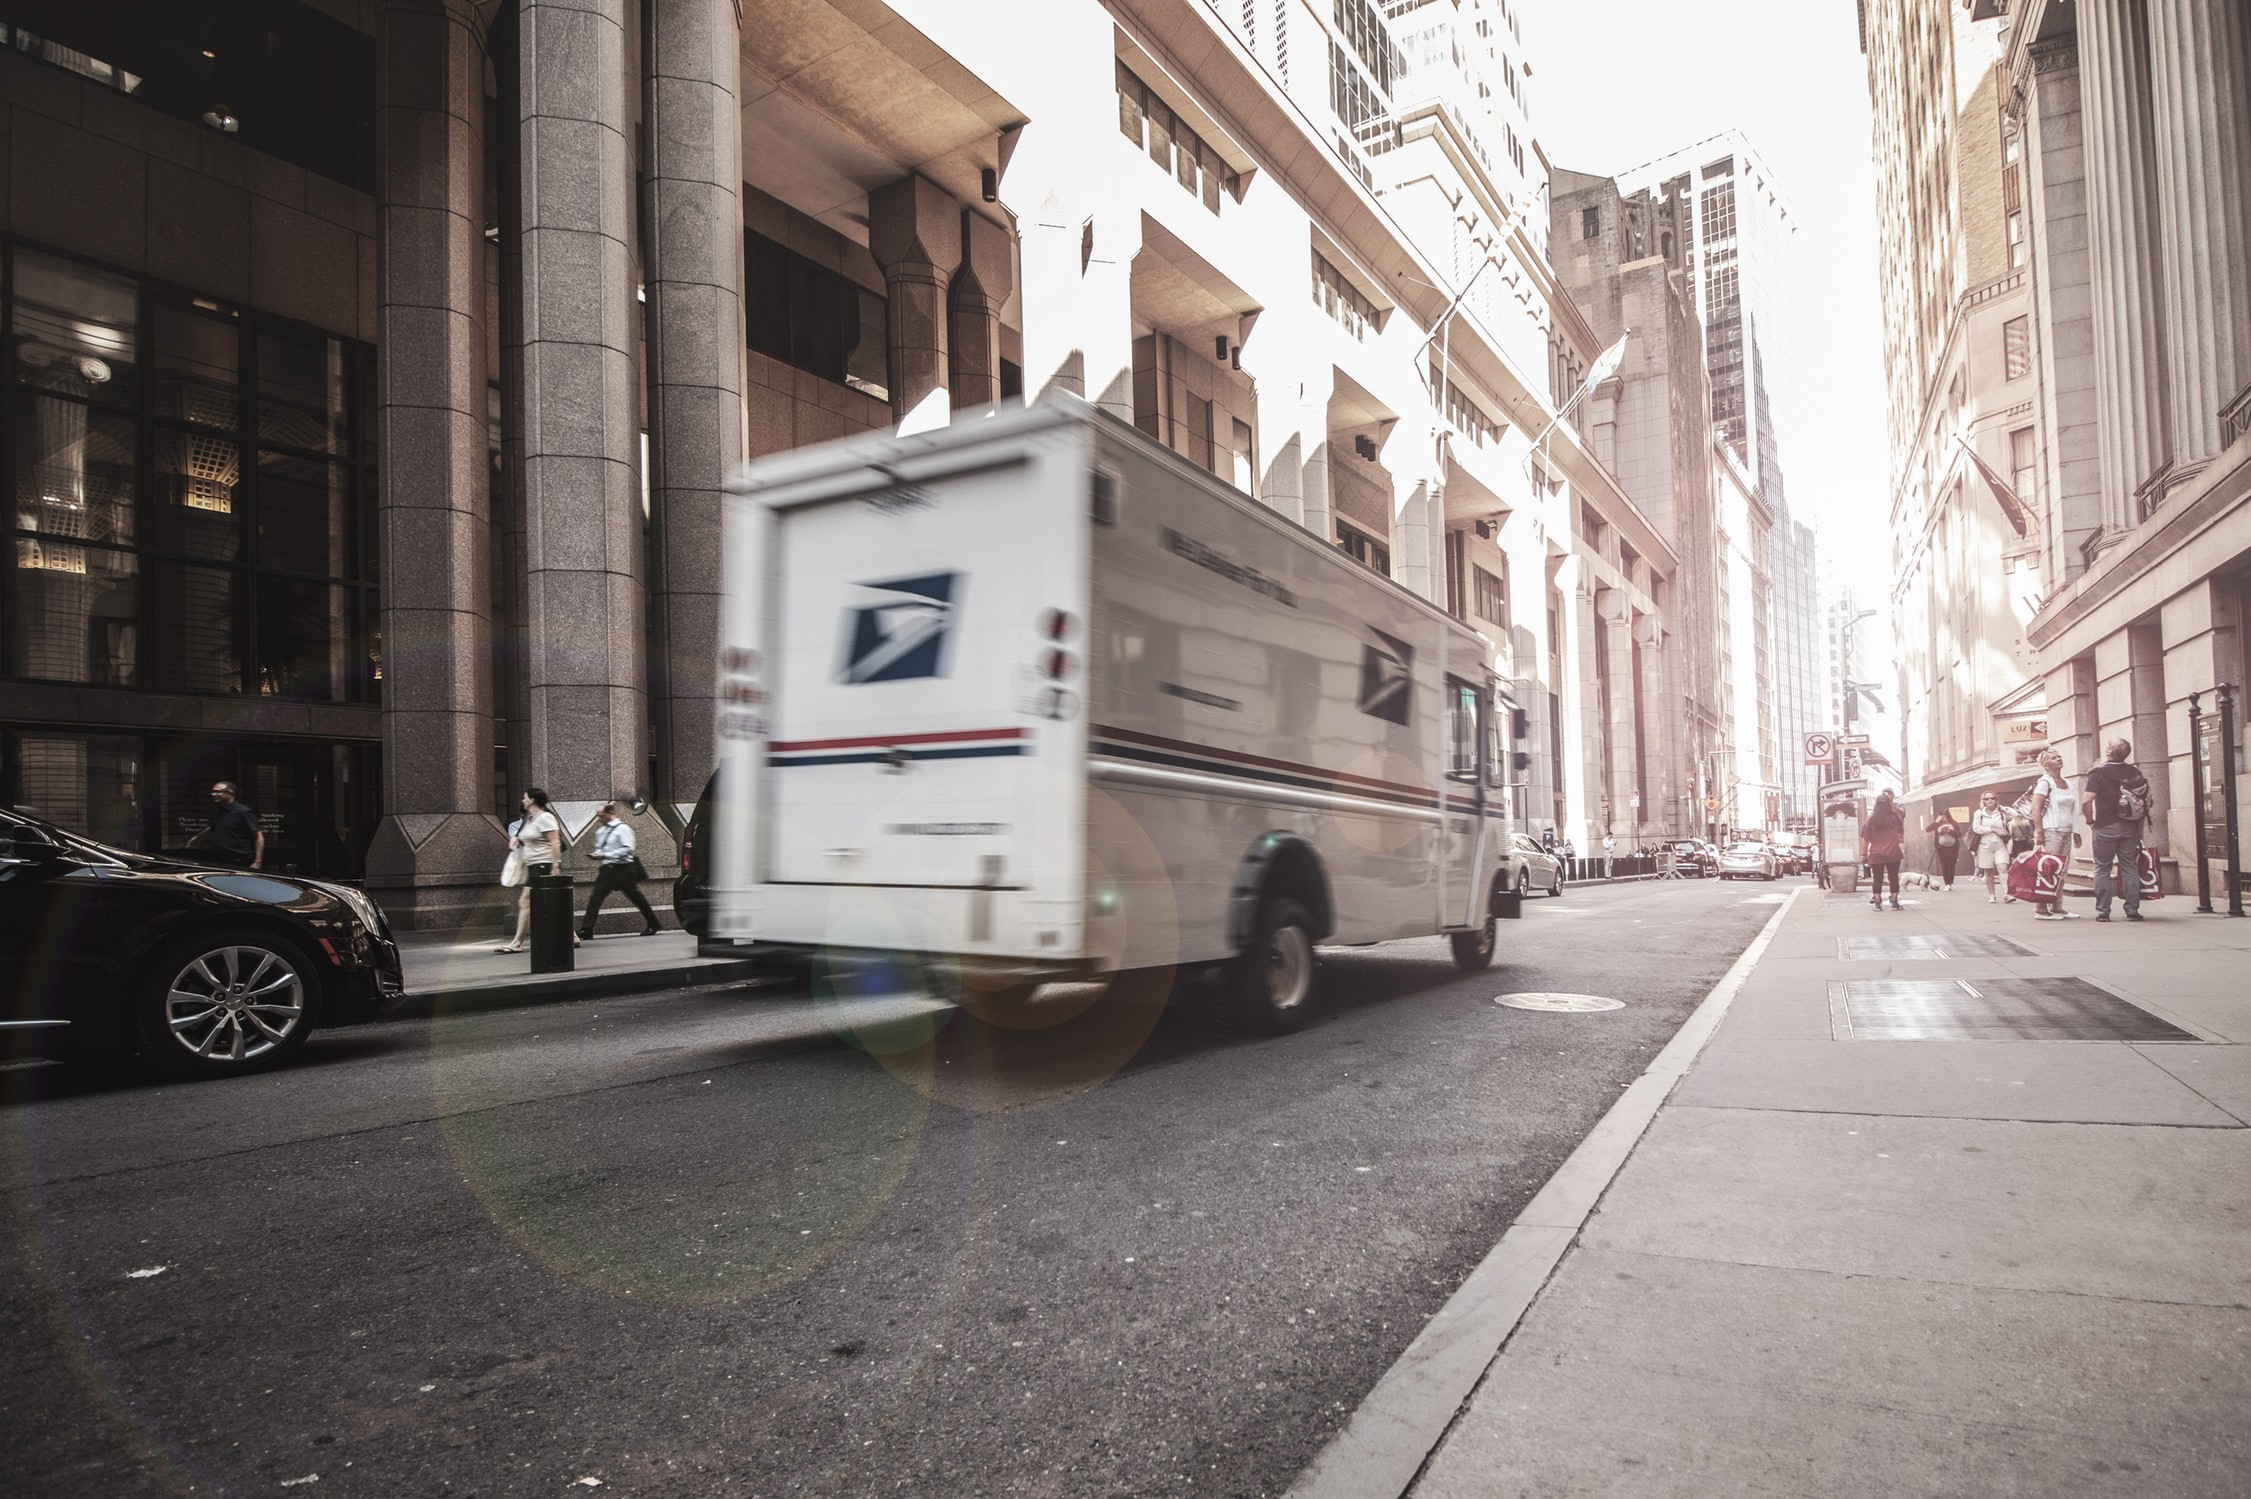 USPS van making a delivery in a city